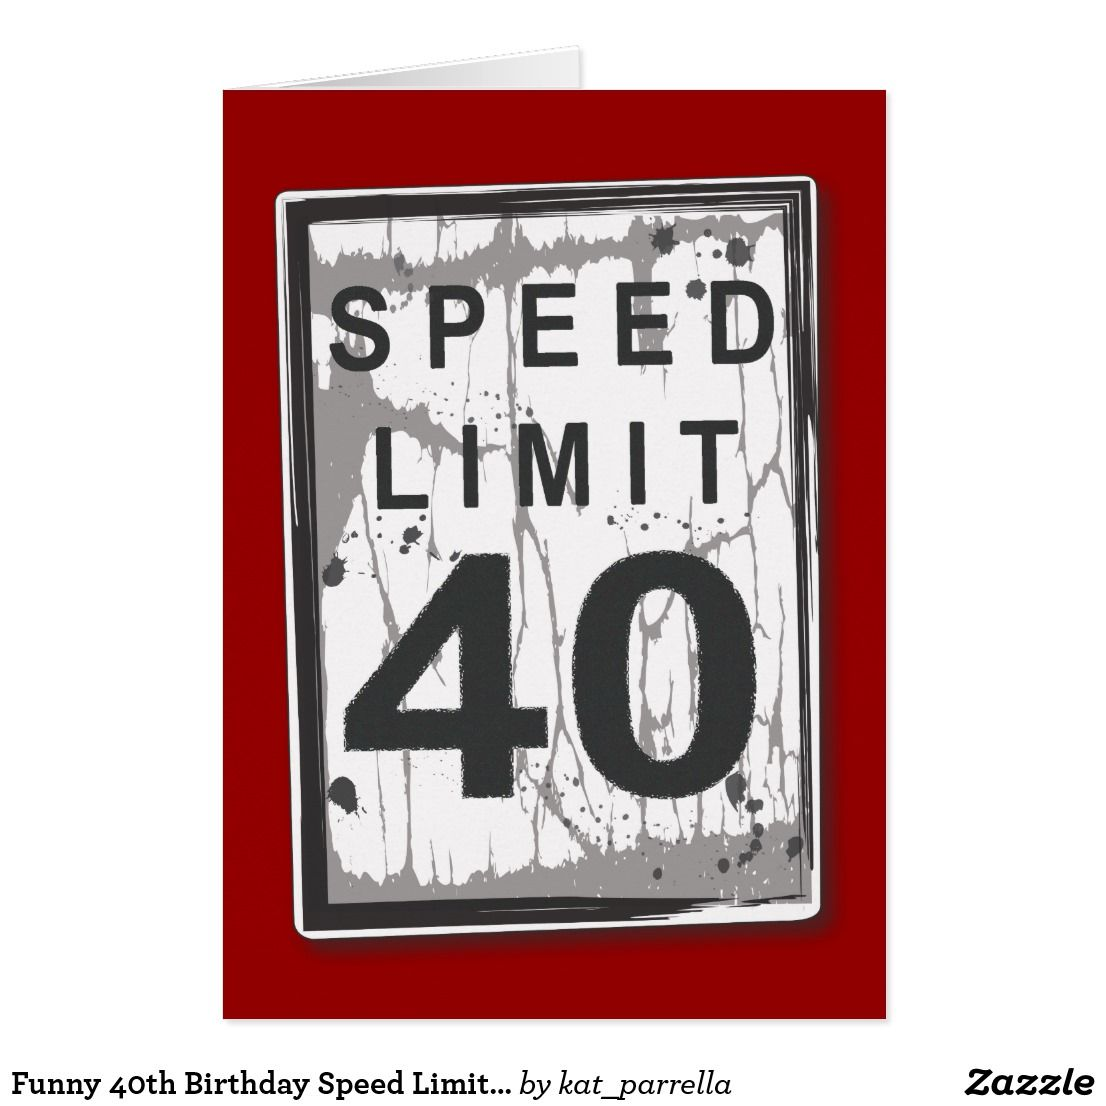 Funny 40th birthday speed limit card funny 40th birthday 40 funny 40th birthday speed limit card filmwisefo Choice Image